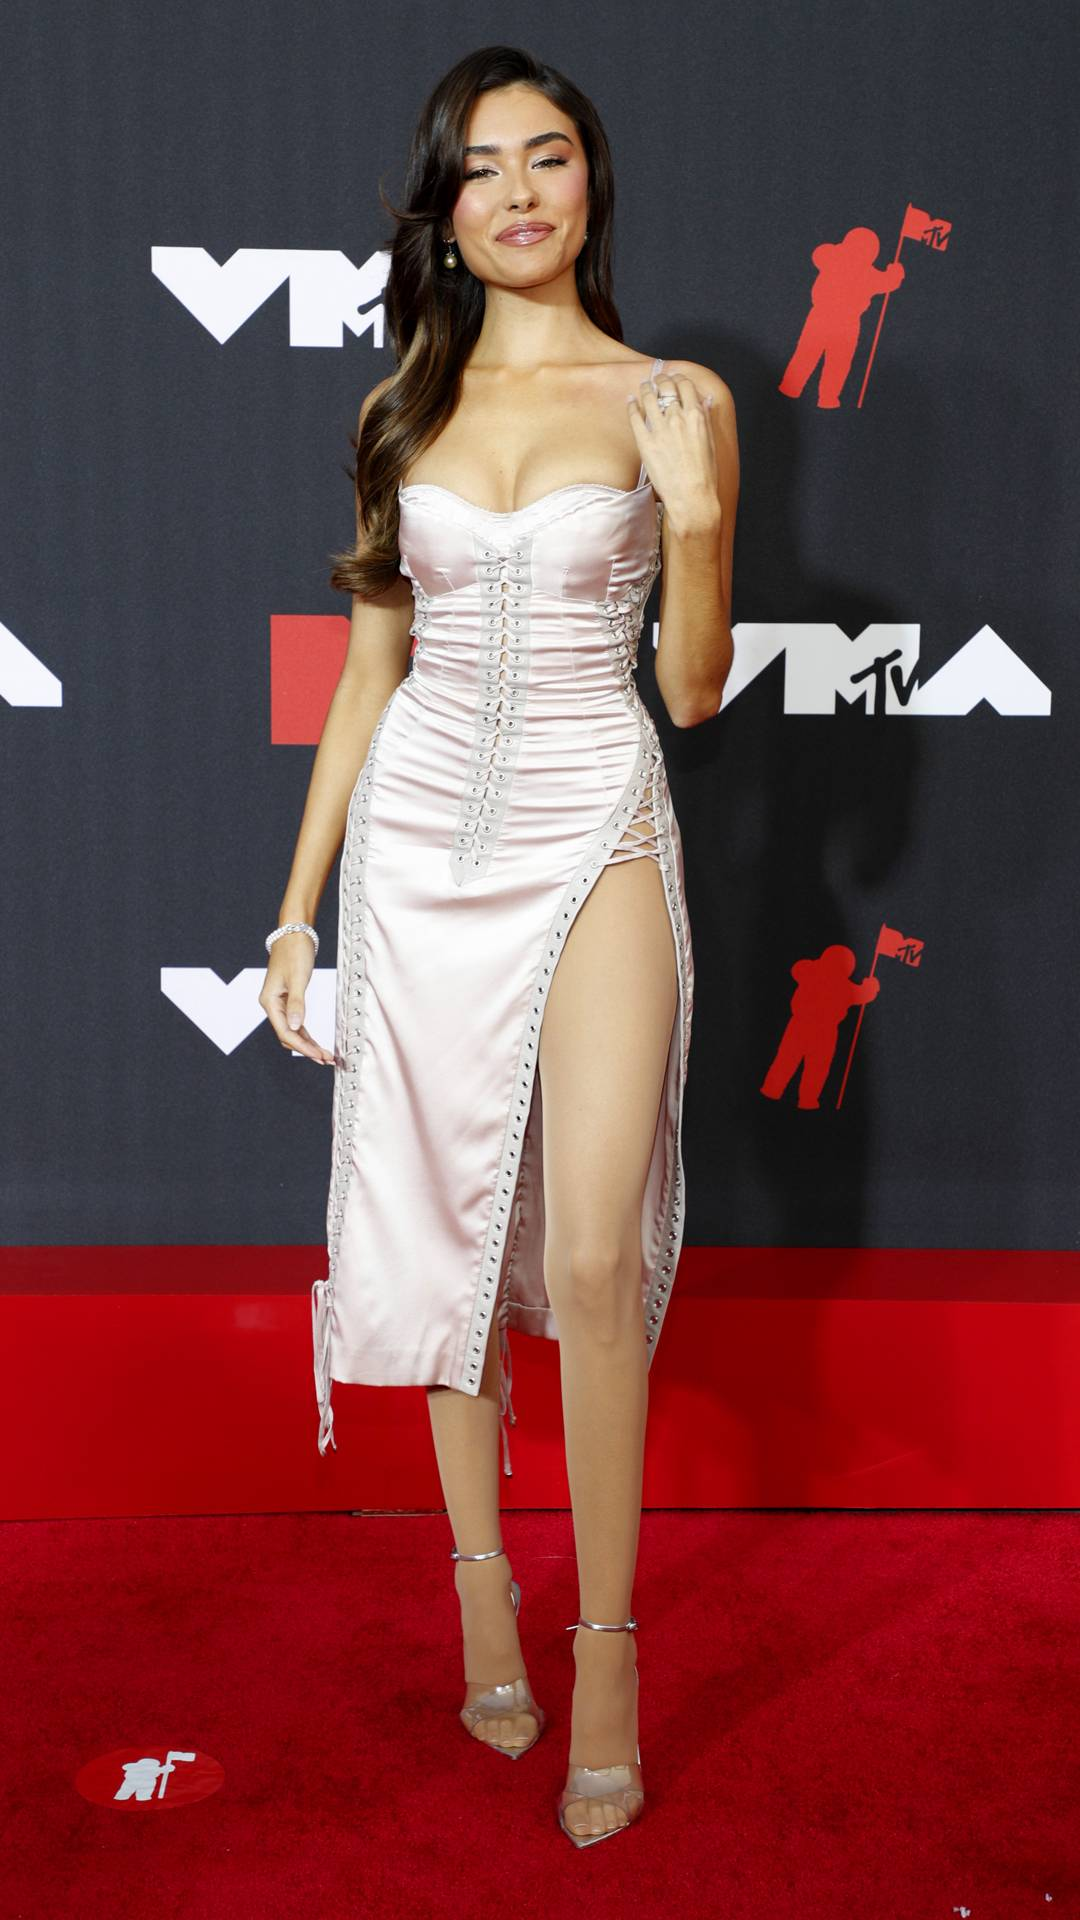 MTV Video Music Awards 2021 | The Best of the VMAs 2021 Red Carpet | Madison Beer | 1080x1920